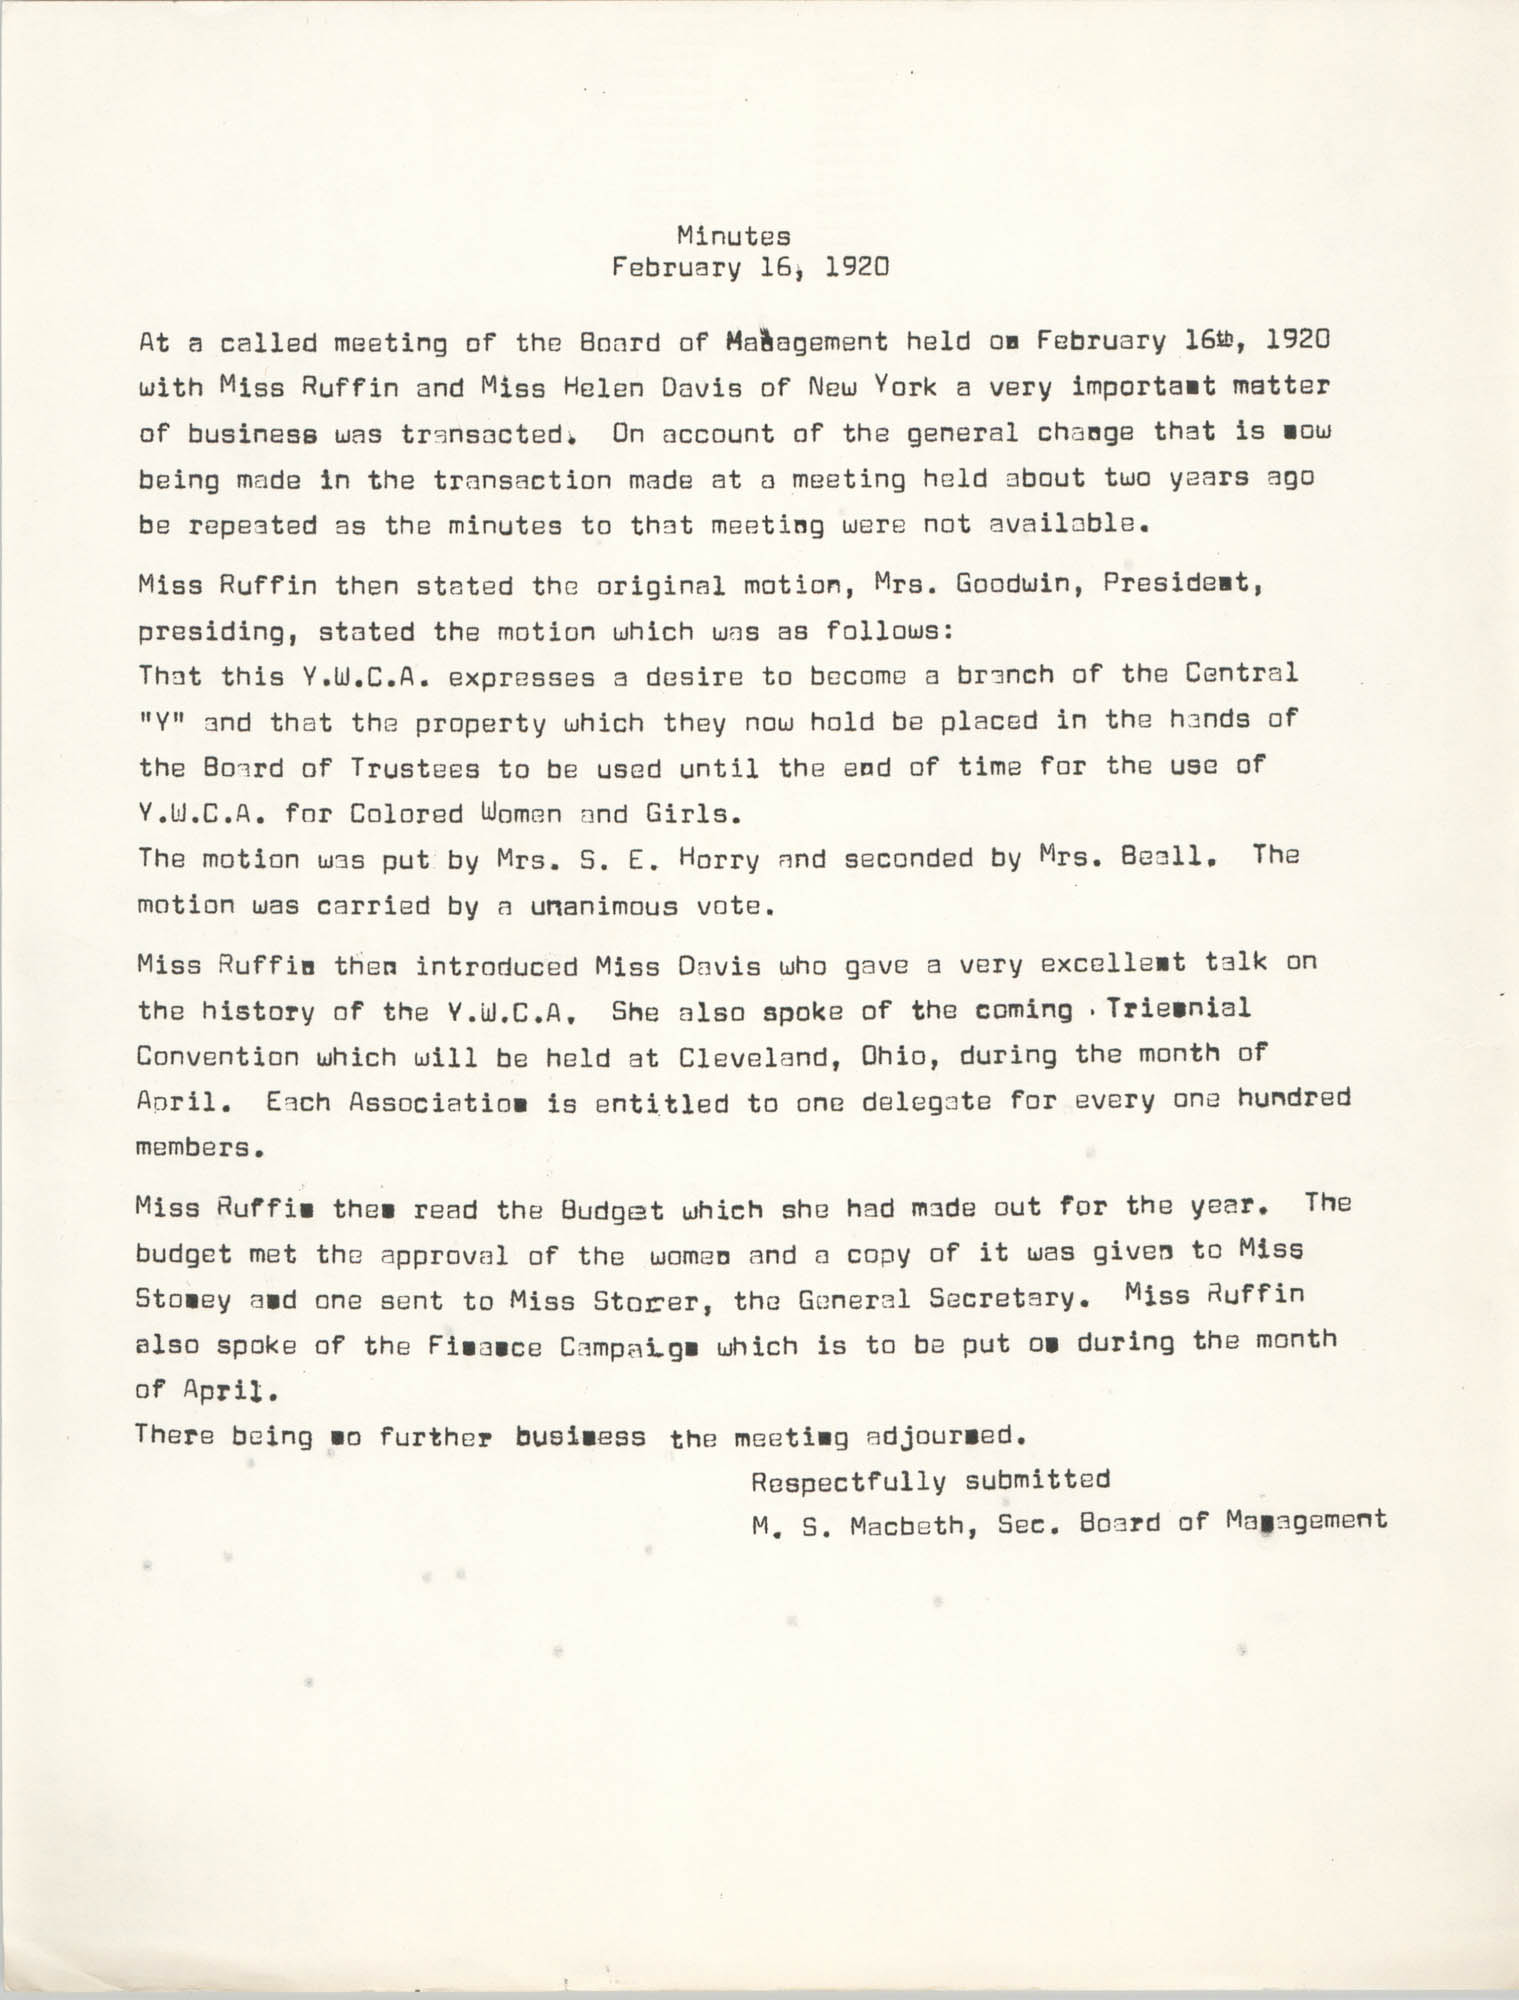 Minutes to the Board of Management Meeting, Coming Street Y.W.C.A., February 16, 1920